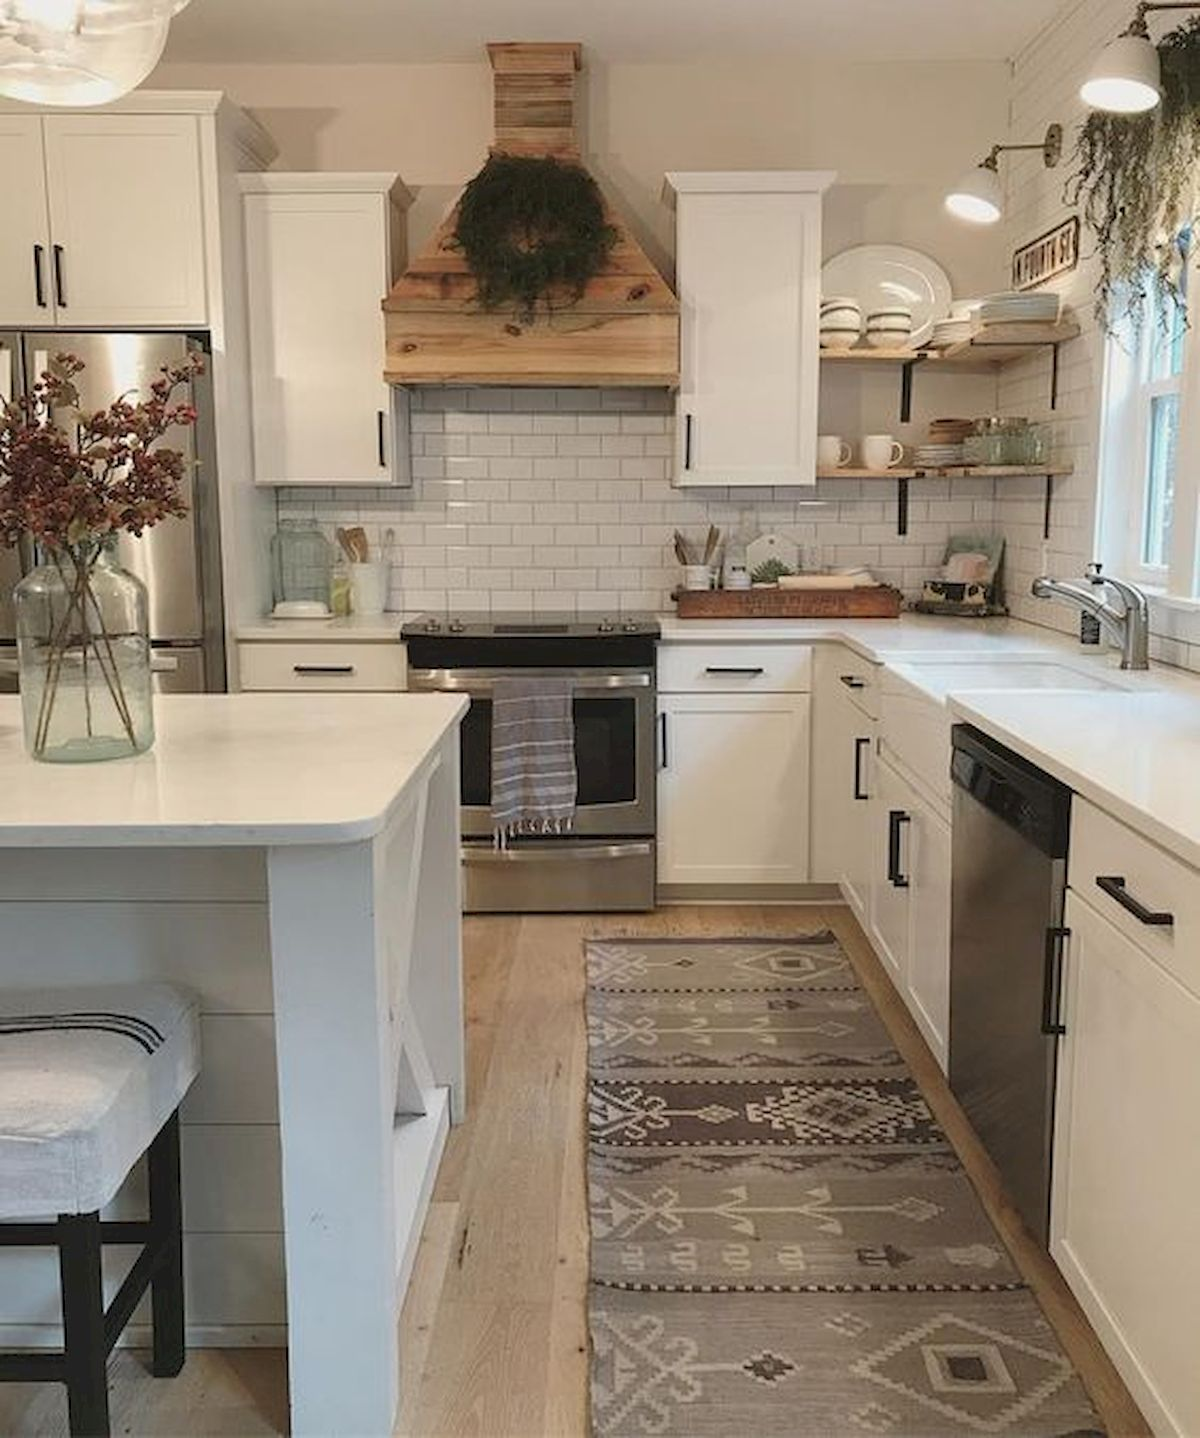 60 Great Farmhouse Kitchen Countertops Design Ideas And ... on Farmhouse Counter Tops  id=83300